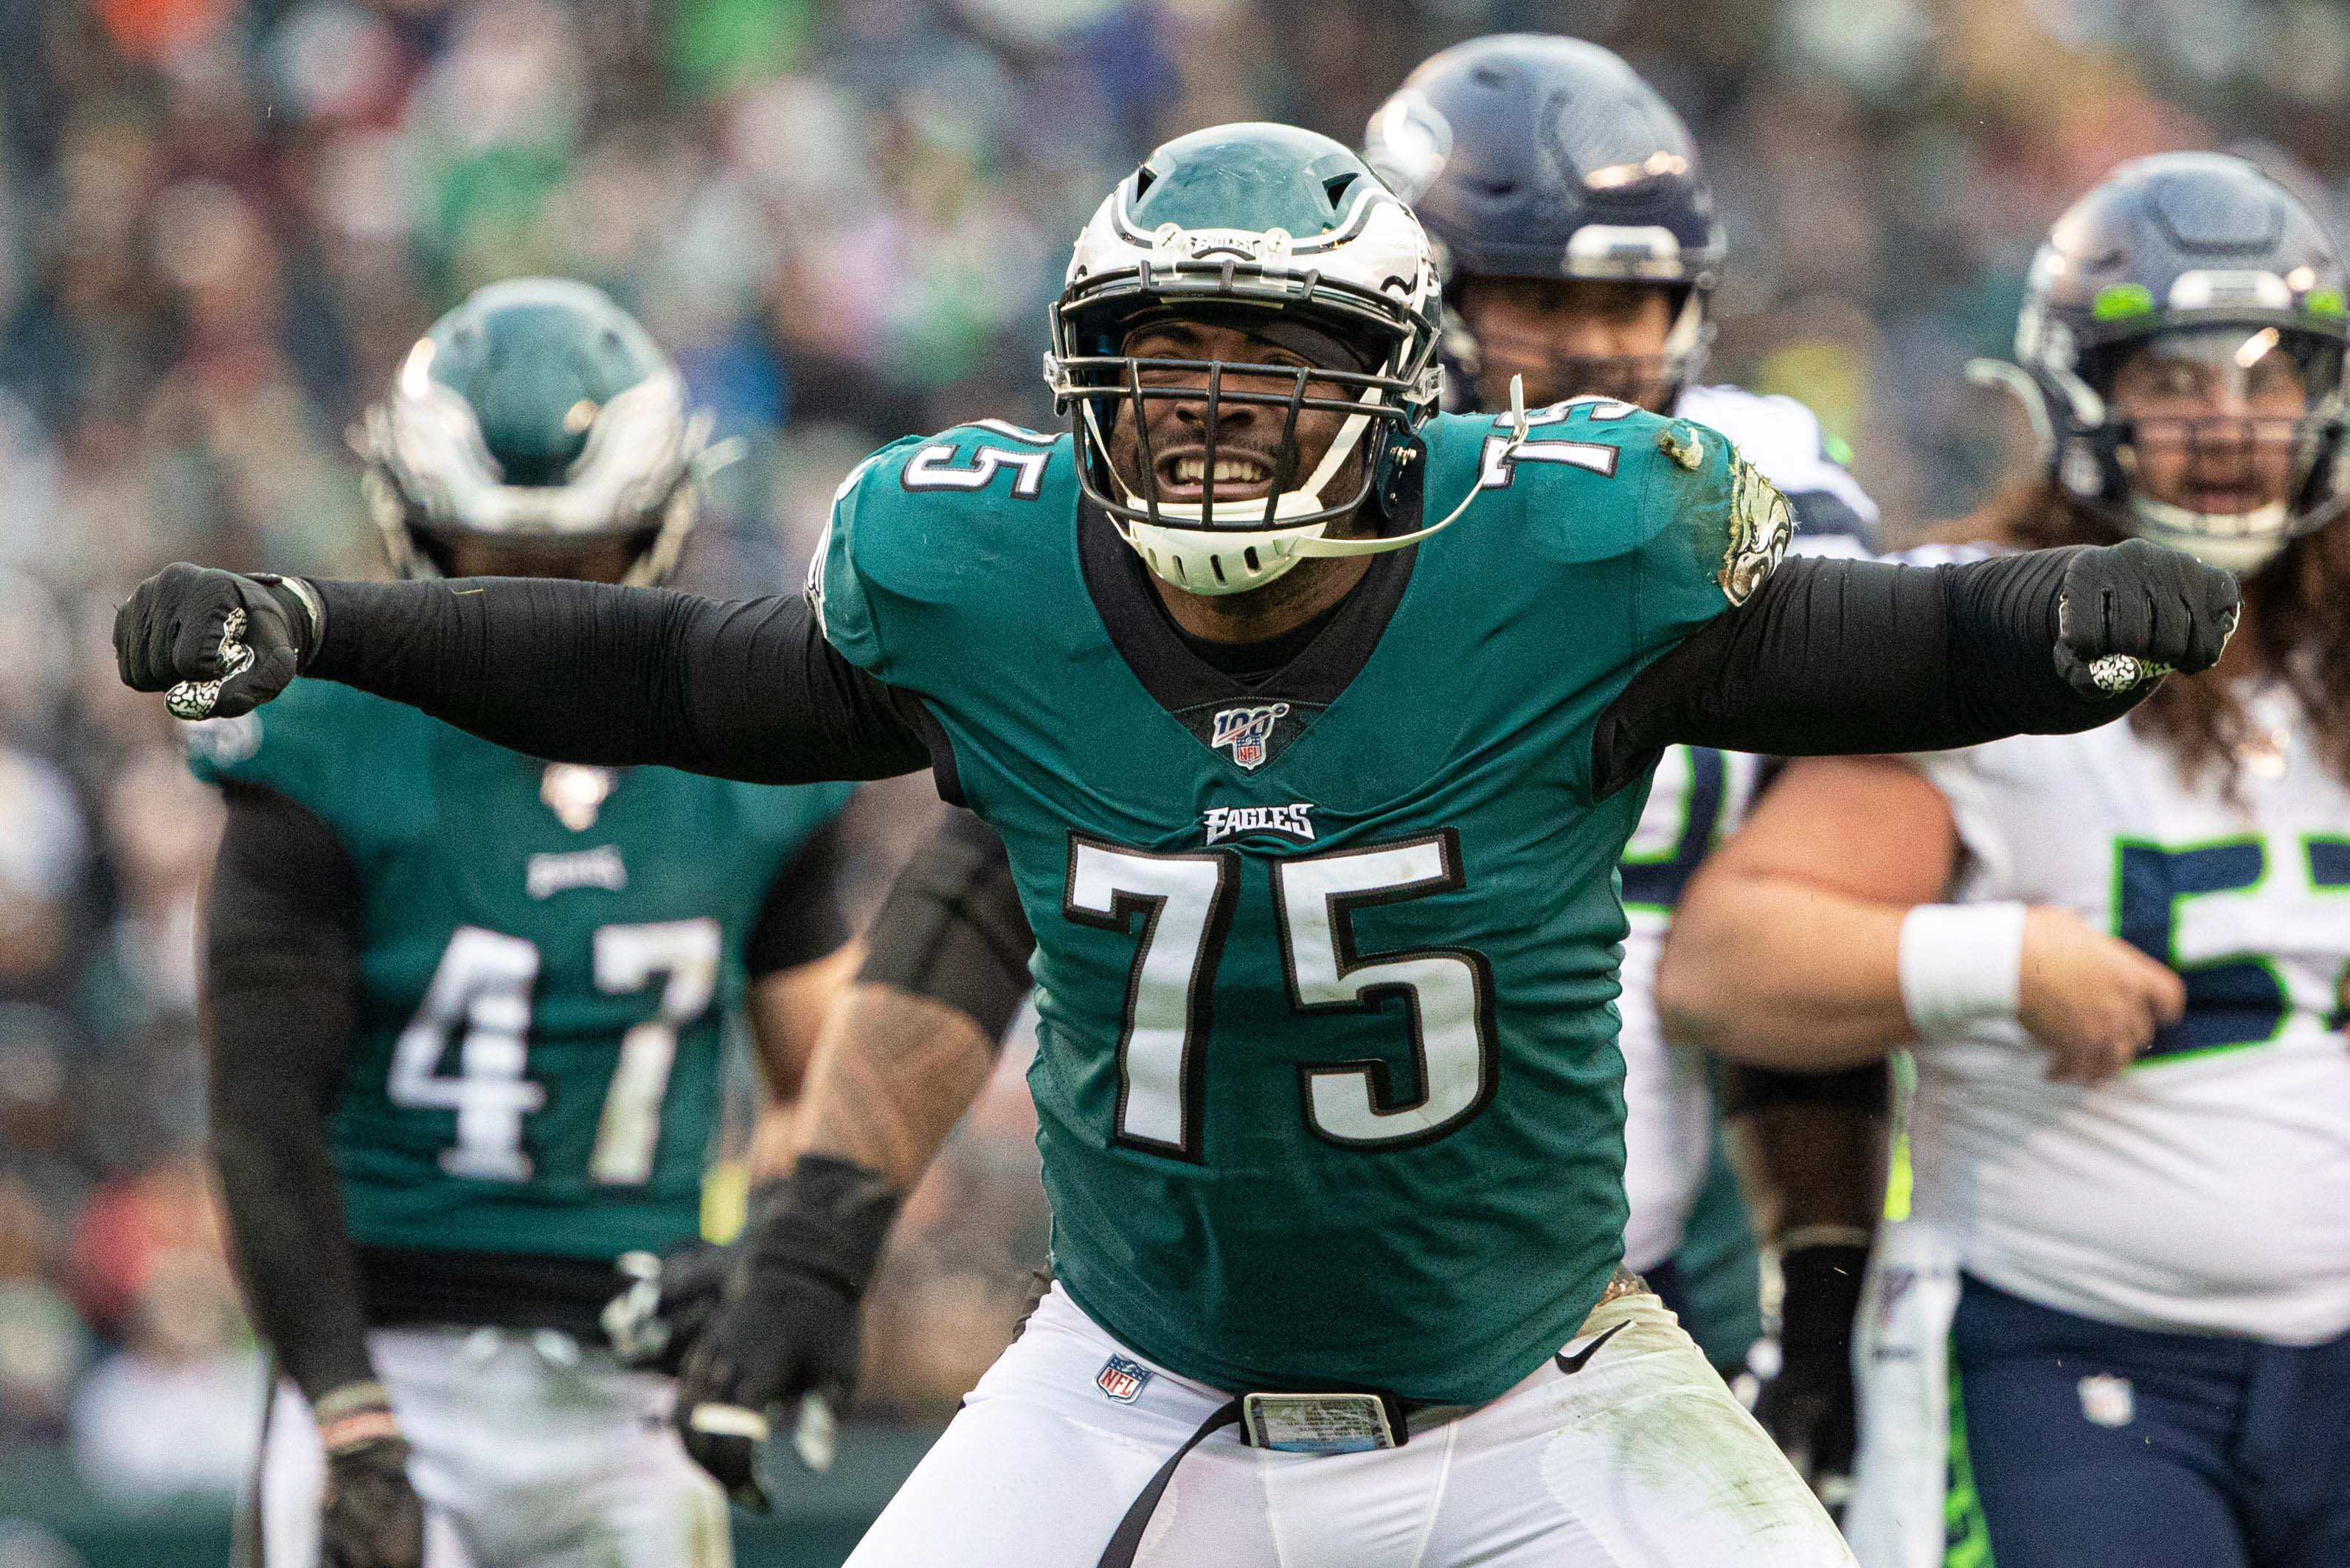 Nov 24, 2019; Philadelphia, PA, USA; Philadelphia Eagles defensive end Vinny Curry (75) reacts against the Seattle Seahawks during the third quarter at Lincoln Financial Field. Mandatory Credit: Bill Streicher-USA TODAY Sports